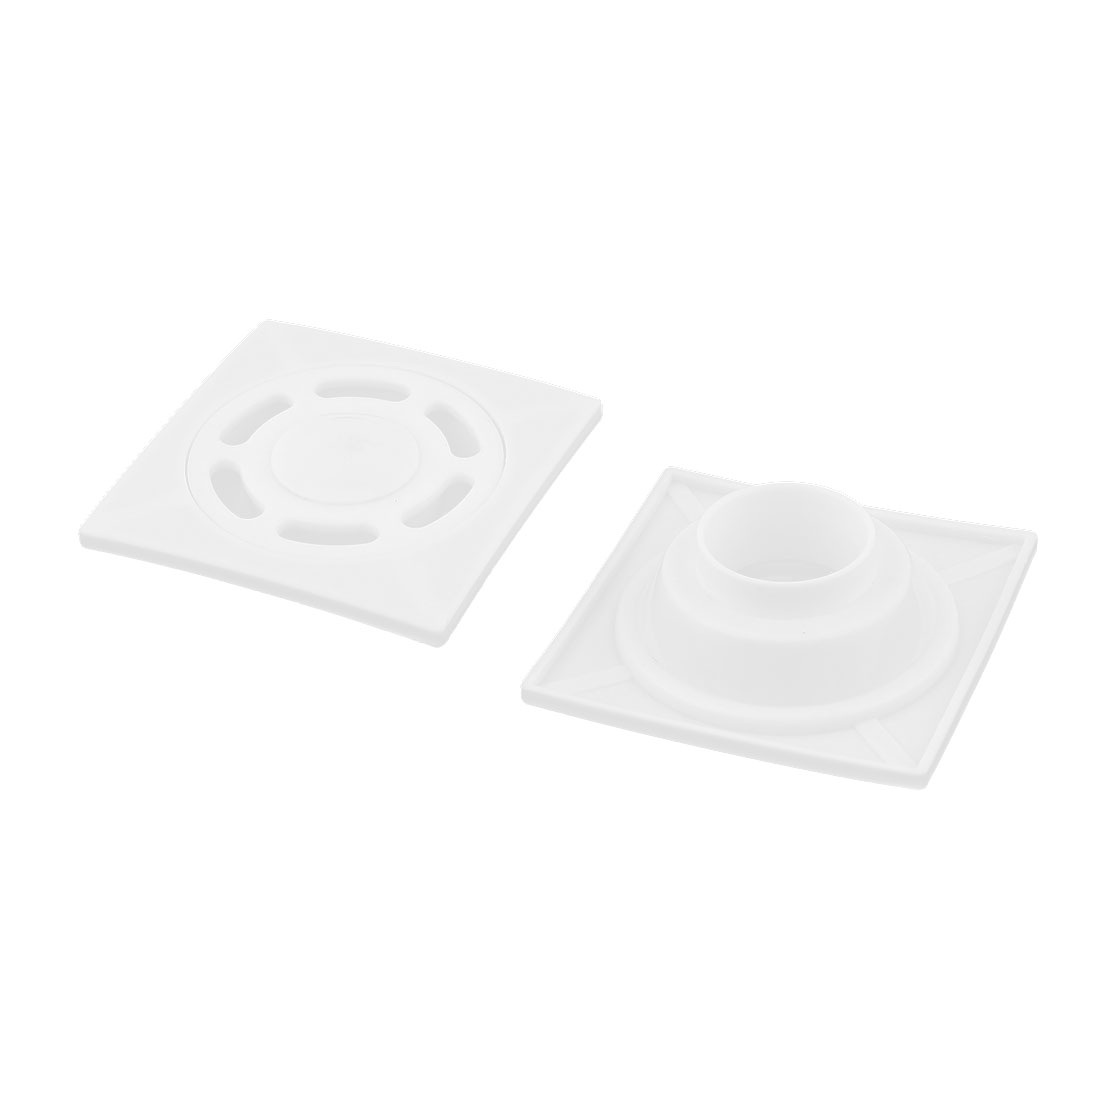 Bathroom Plastic Square Sundries Hair Stopper Water Strainer Floor Drain White 2 Pcs